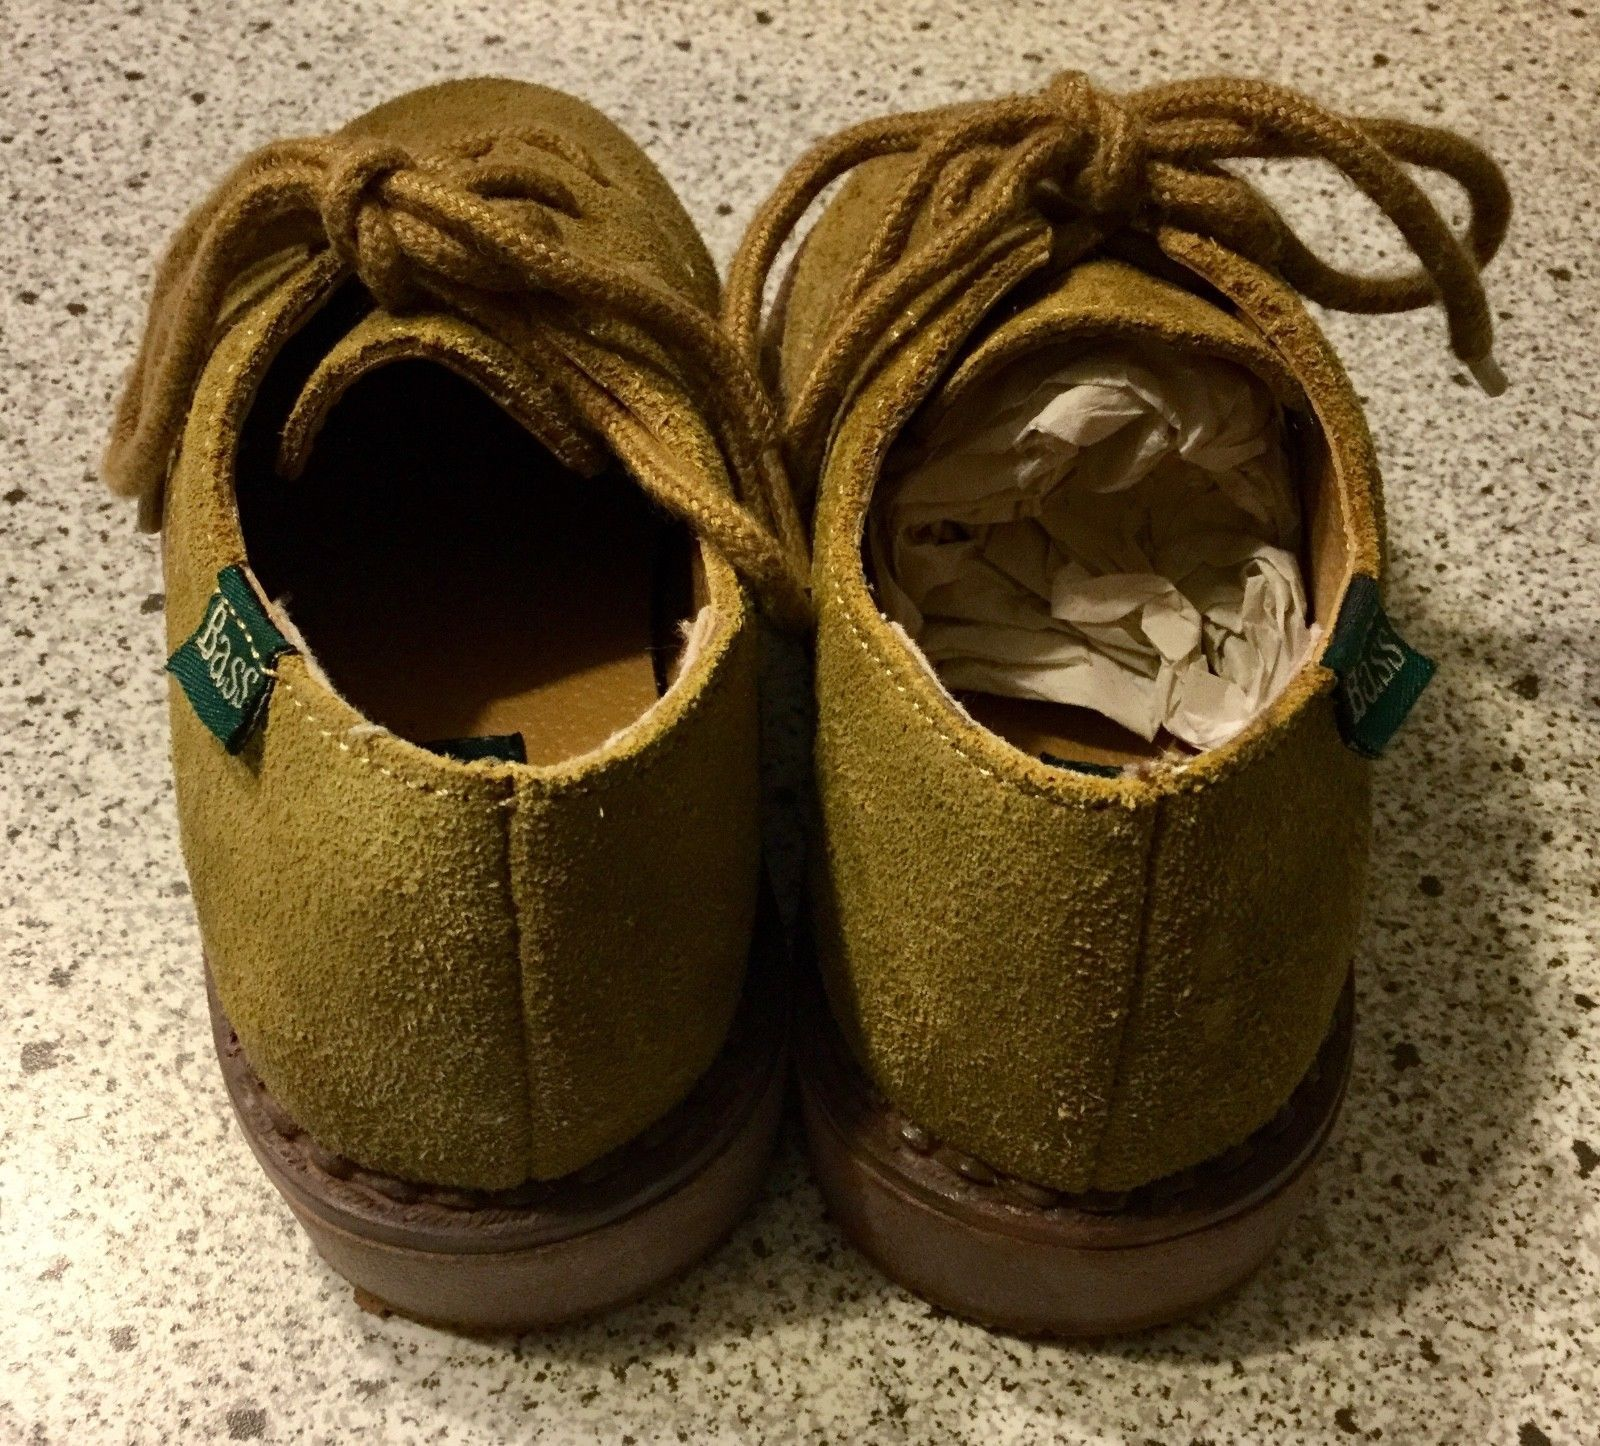 Baby Bass Tan Bucky II 2 Boys Shoes Size 8 M Leather 6547-261 With Box image 4